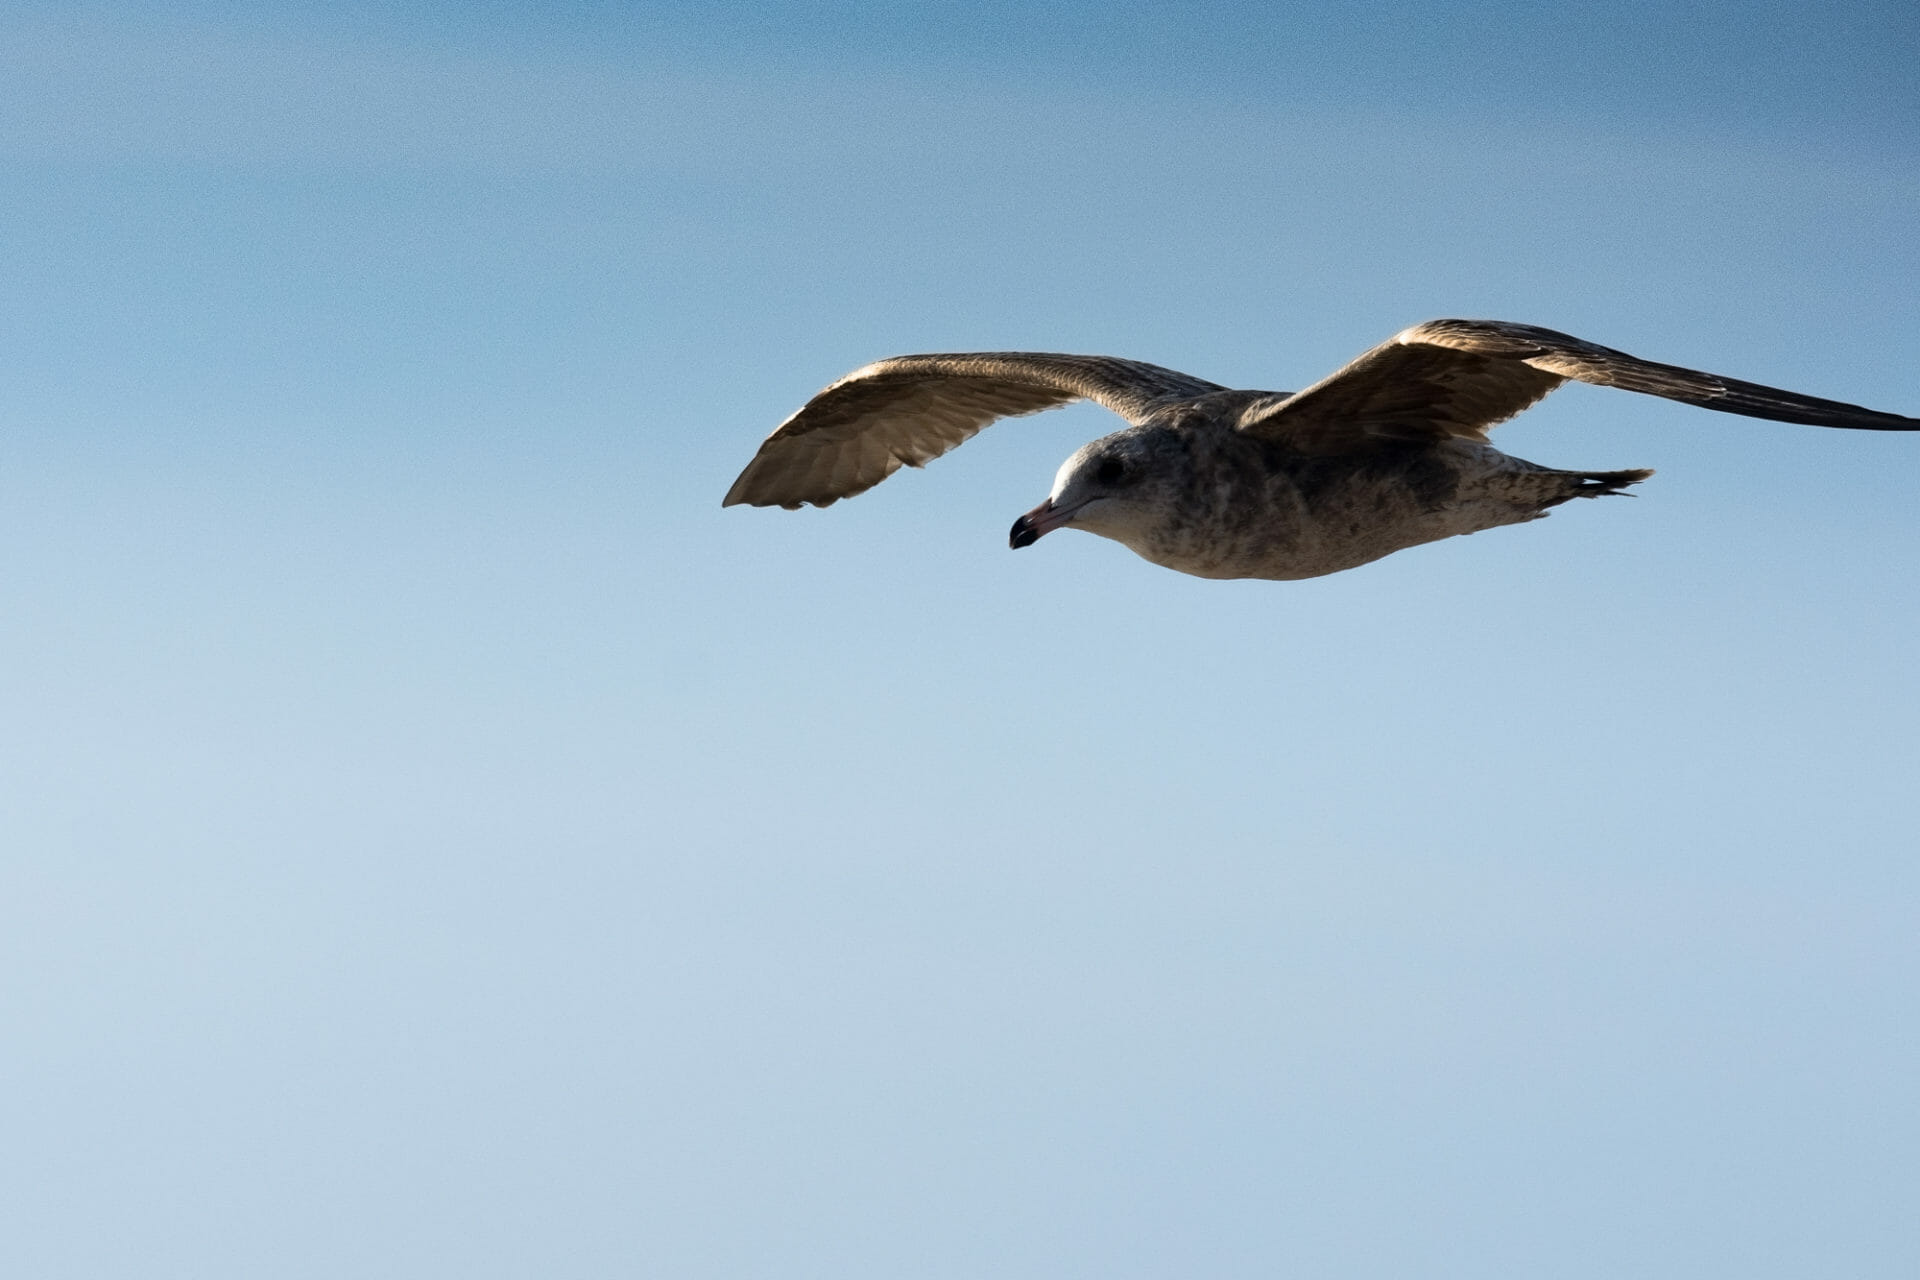 This gull gets to enjoy a free ride on the wind!